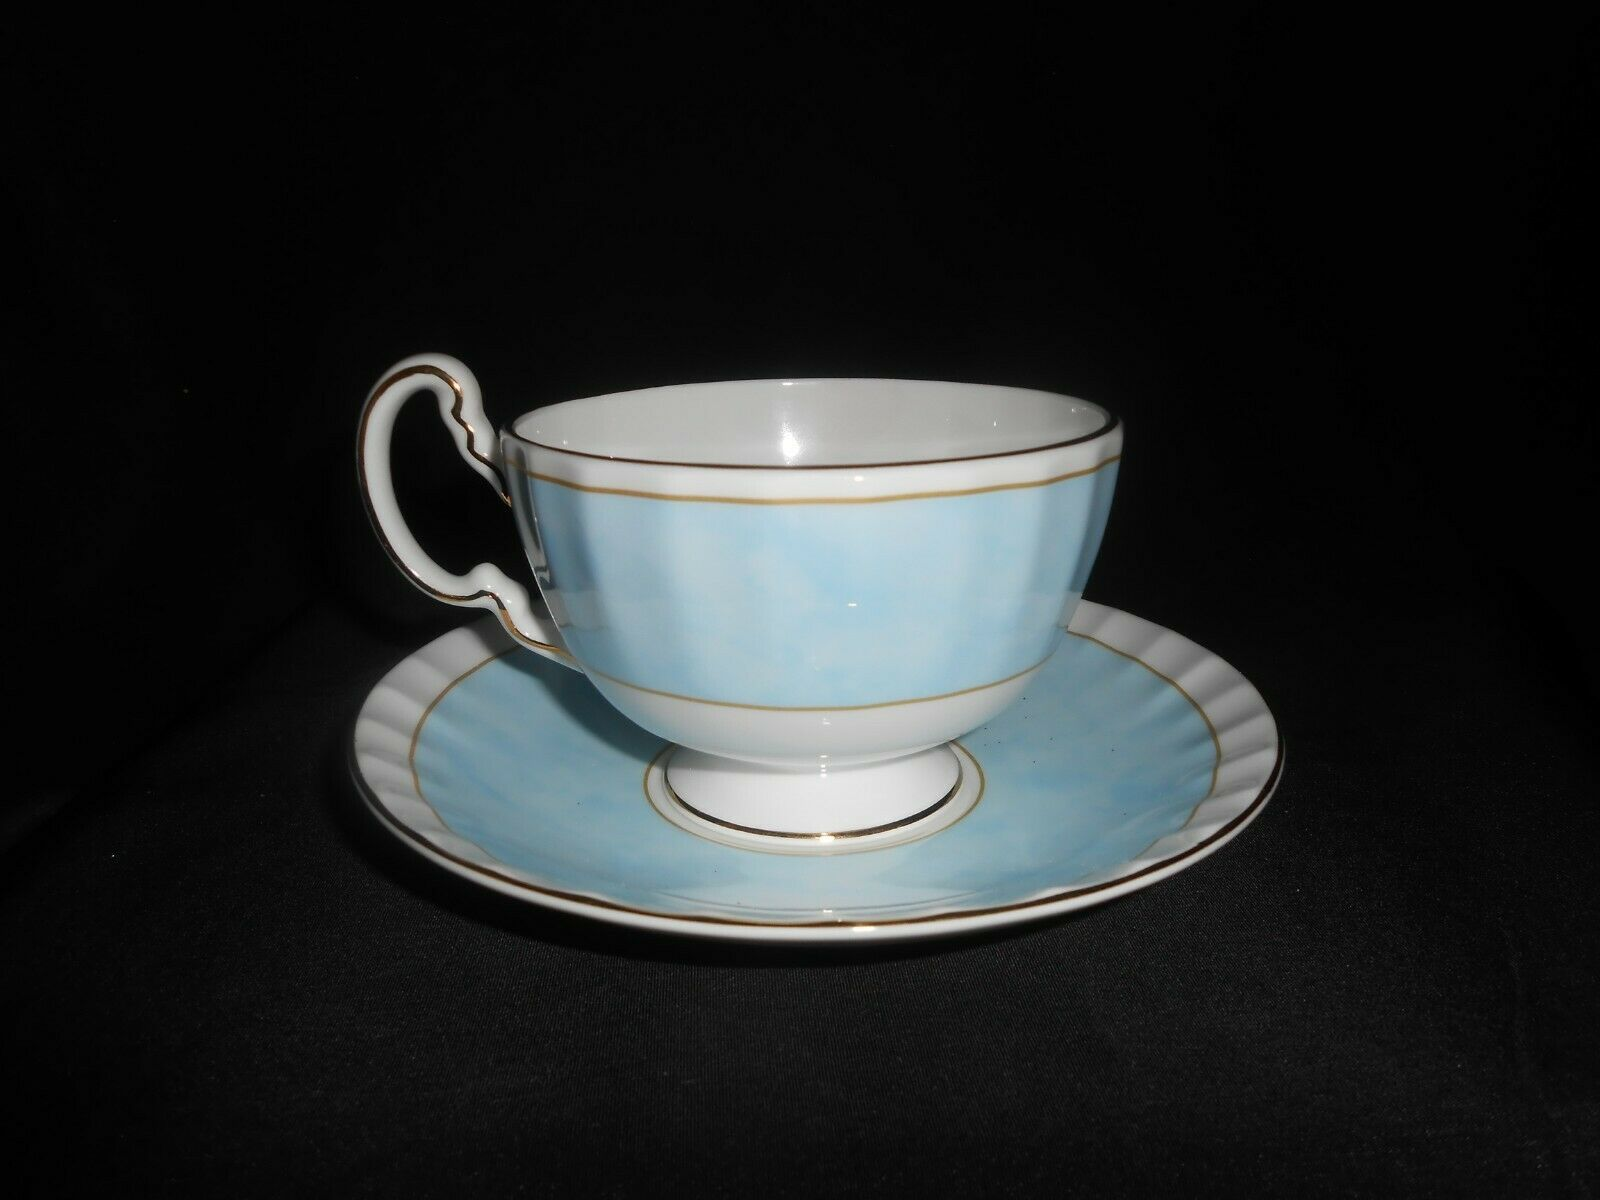 Aynsley Tea Trio Pale Blue Pink Cabbage Rose 3 Piece Set Vintage China image 8